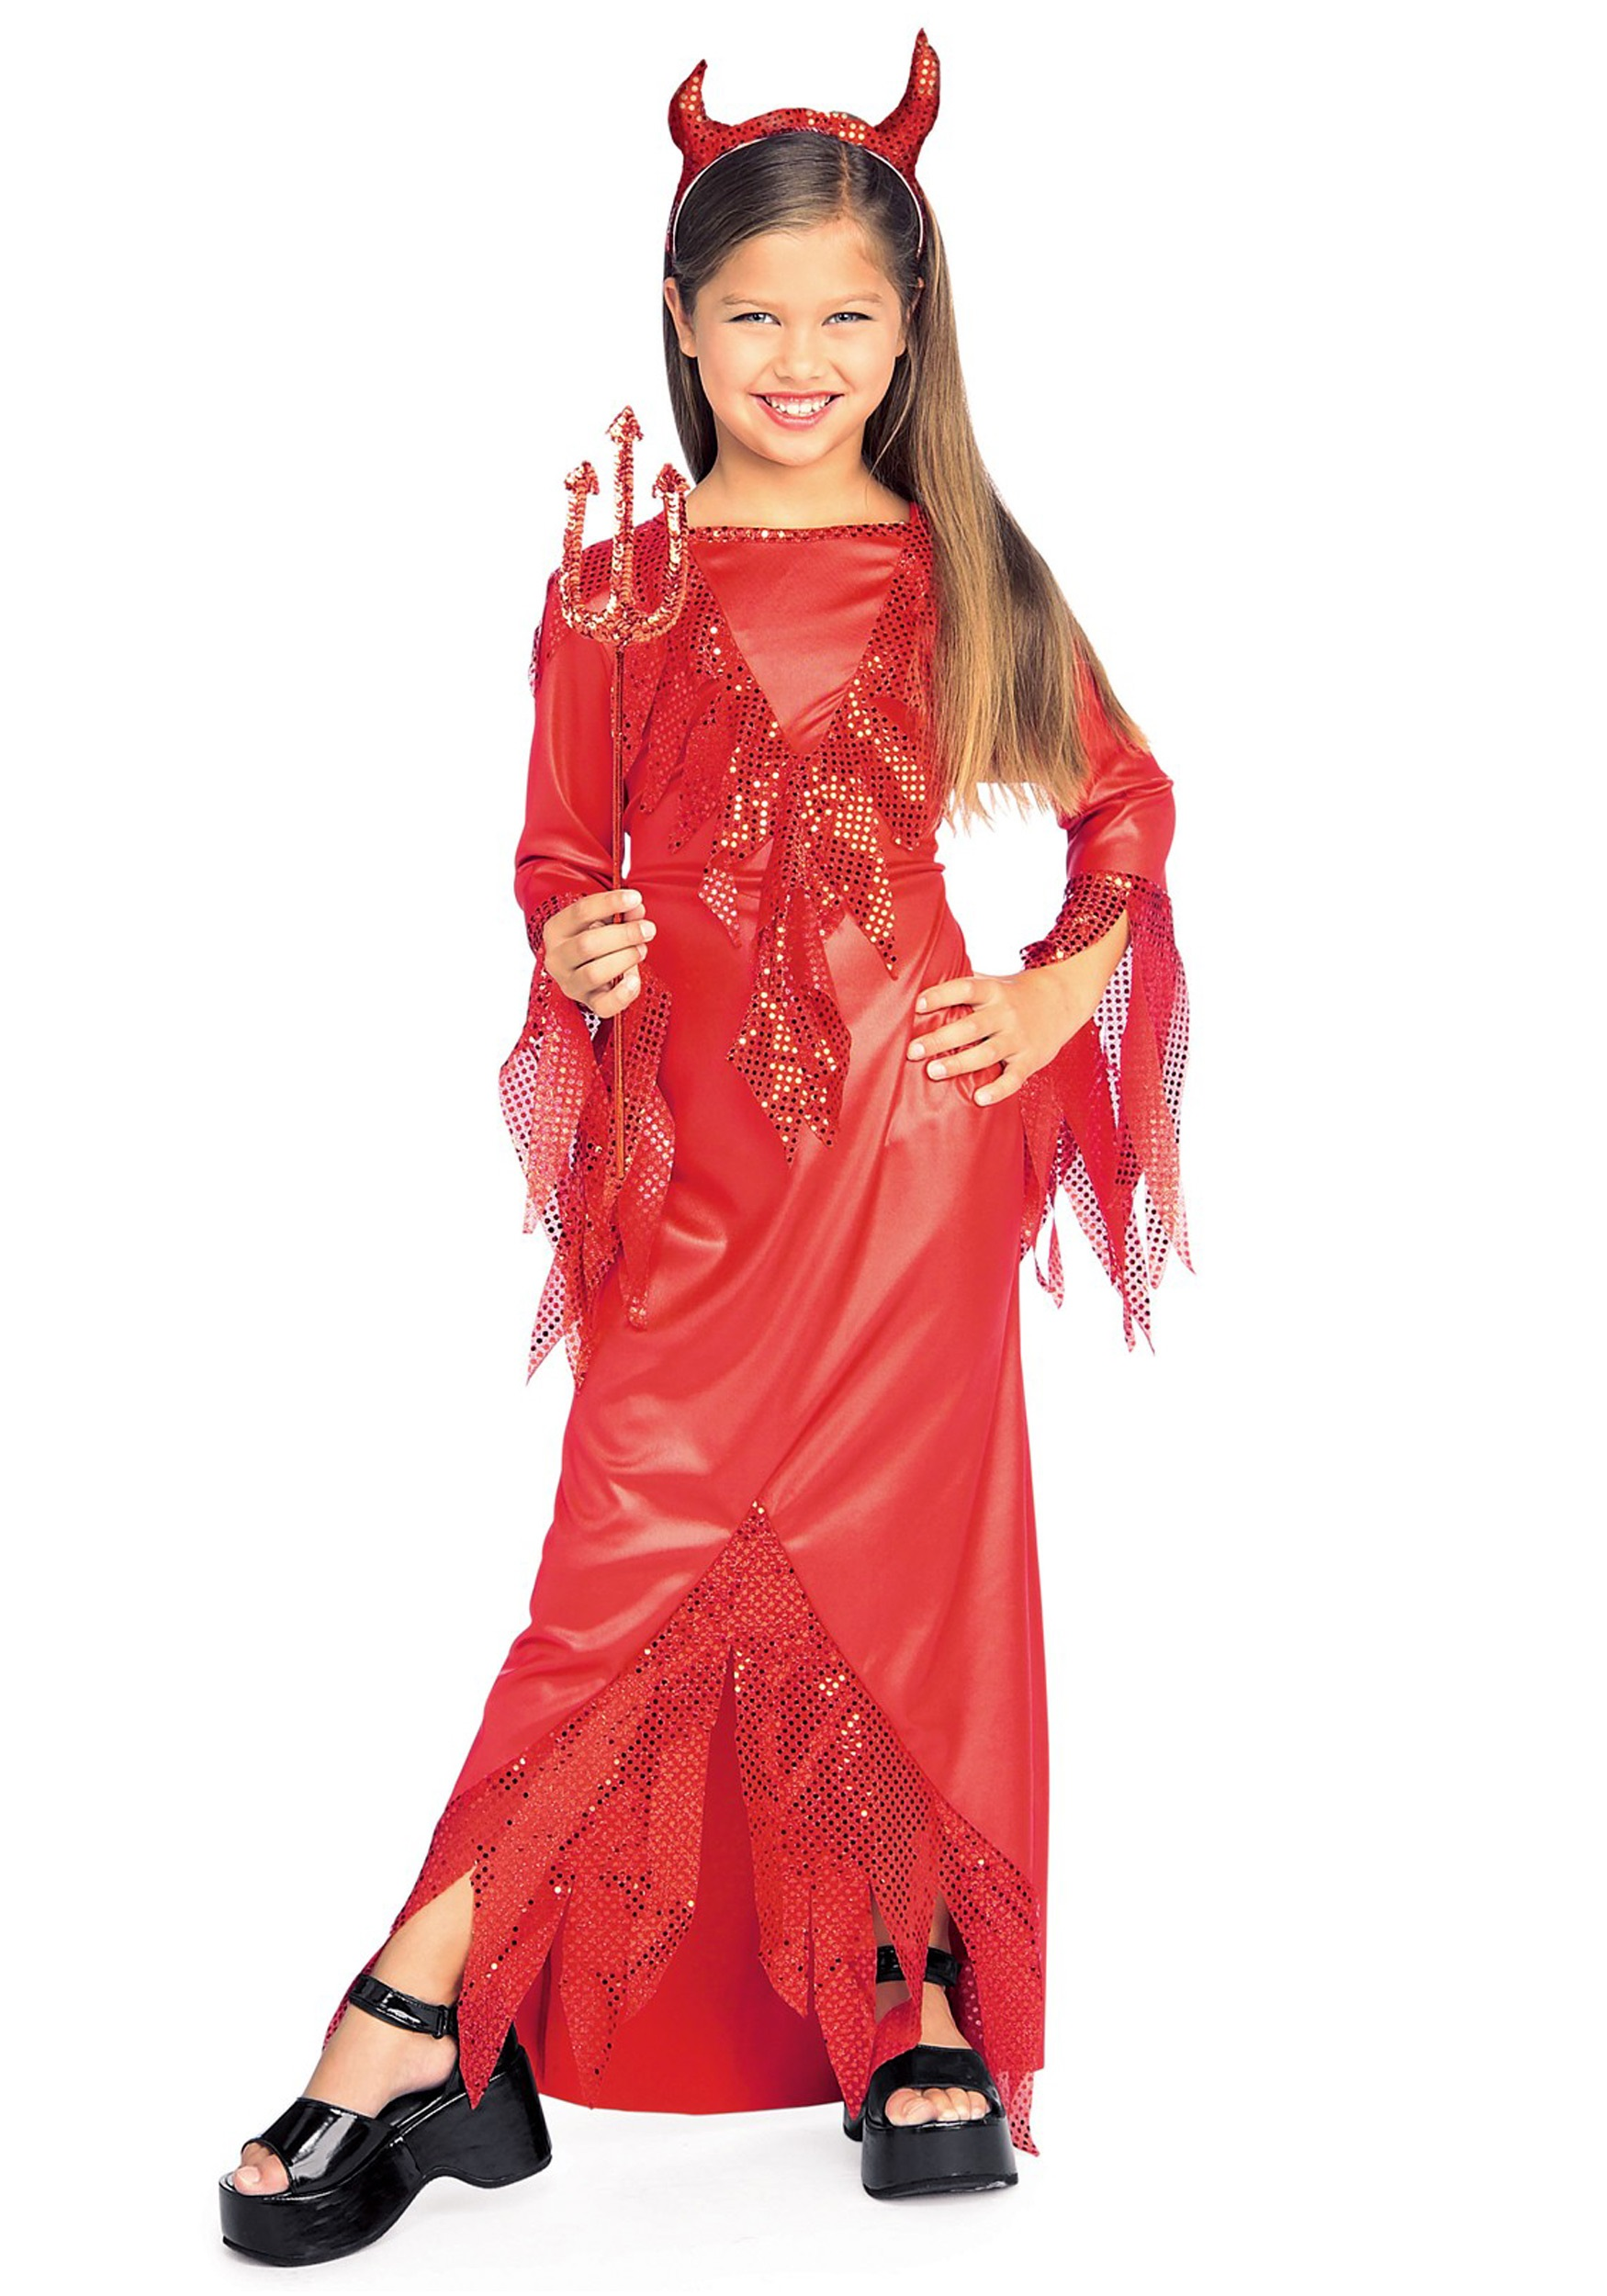 devil darling costume source diva devil halloween costume halloween costume ideas 2018